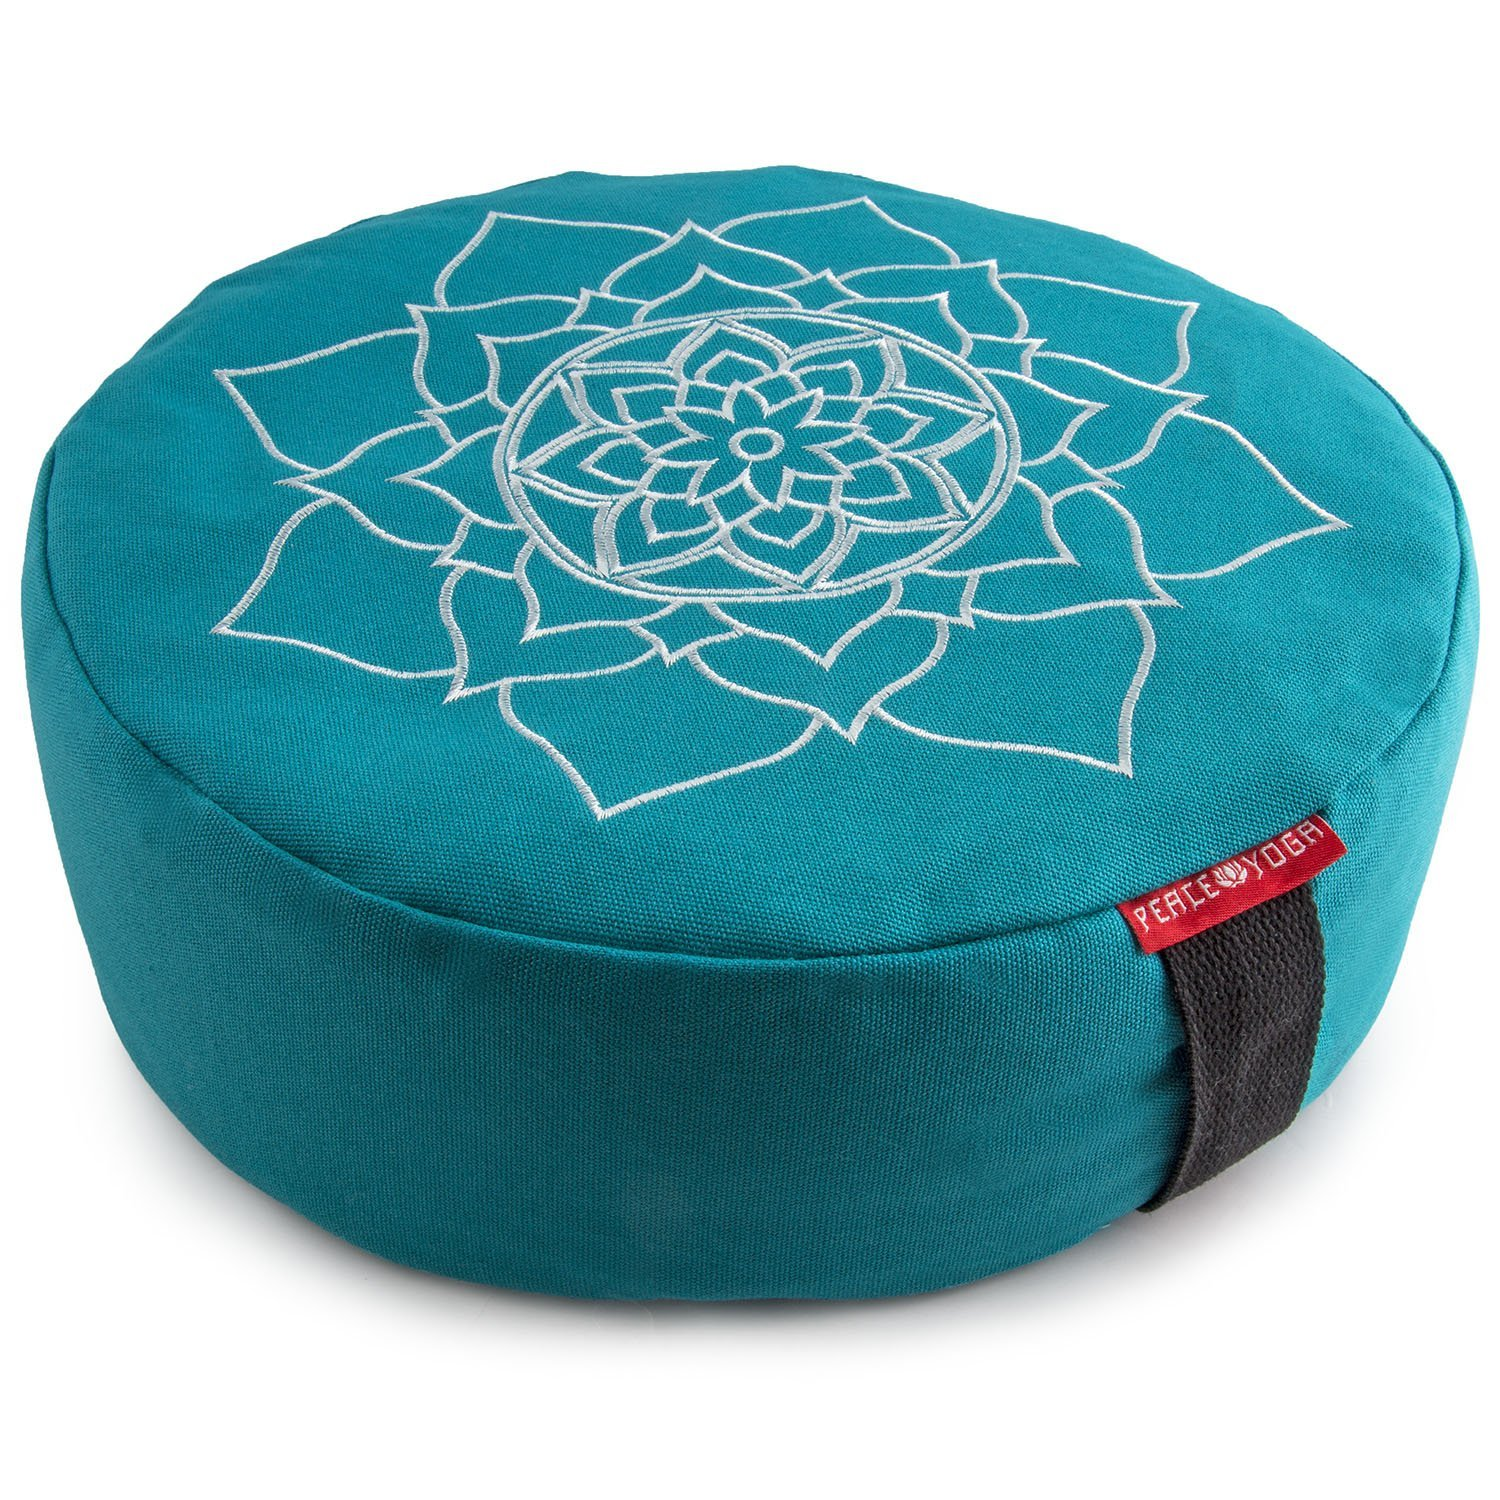 Get a boost up from hard floors, relieve stress on joints and properly support your spine with this meditation pillow. - $